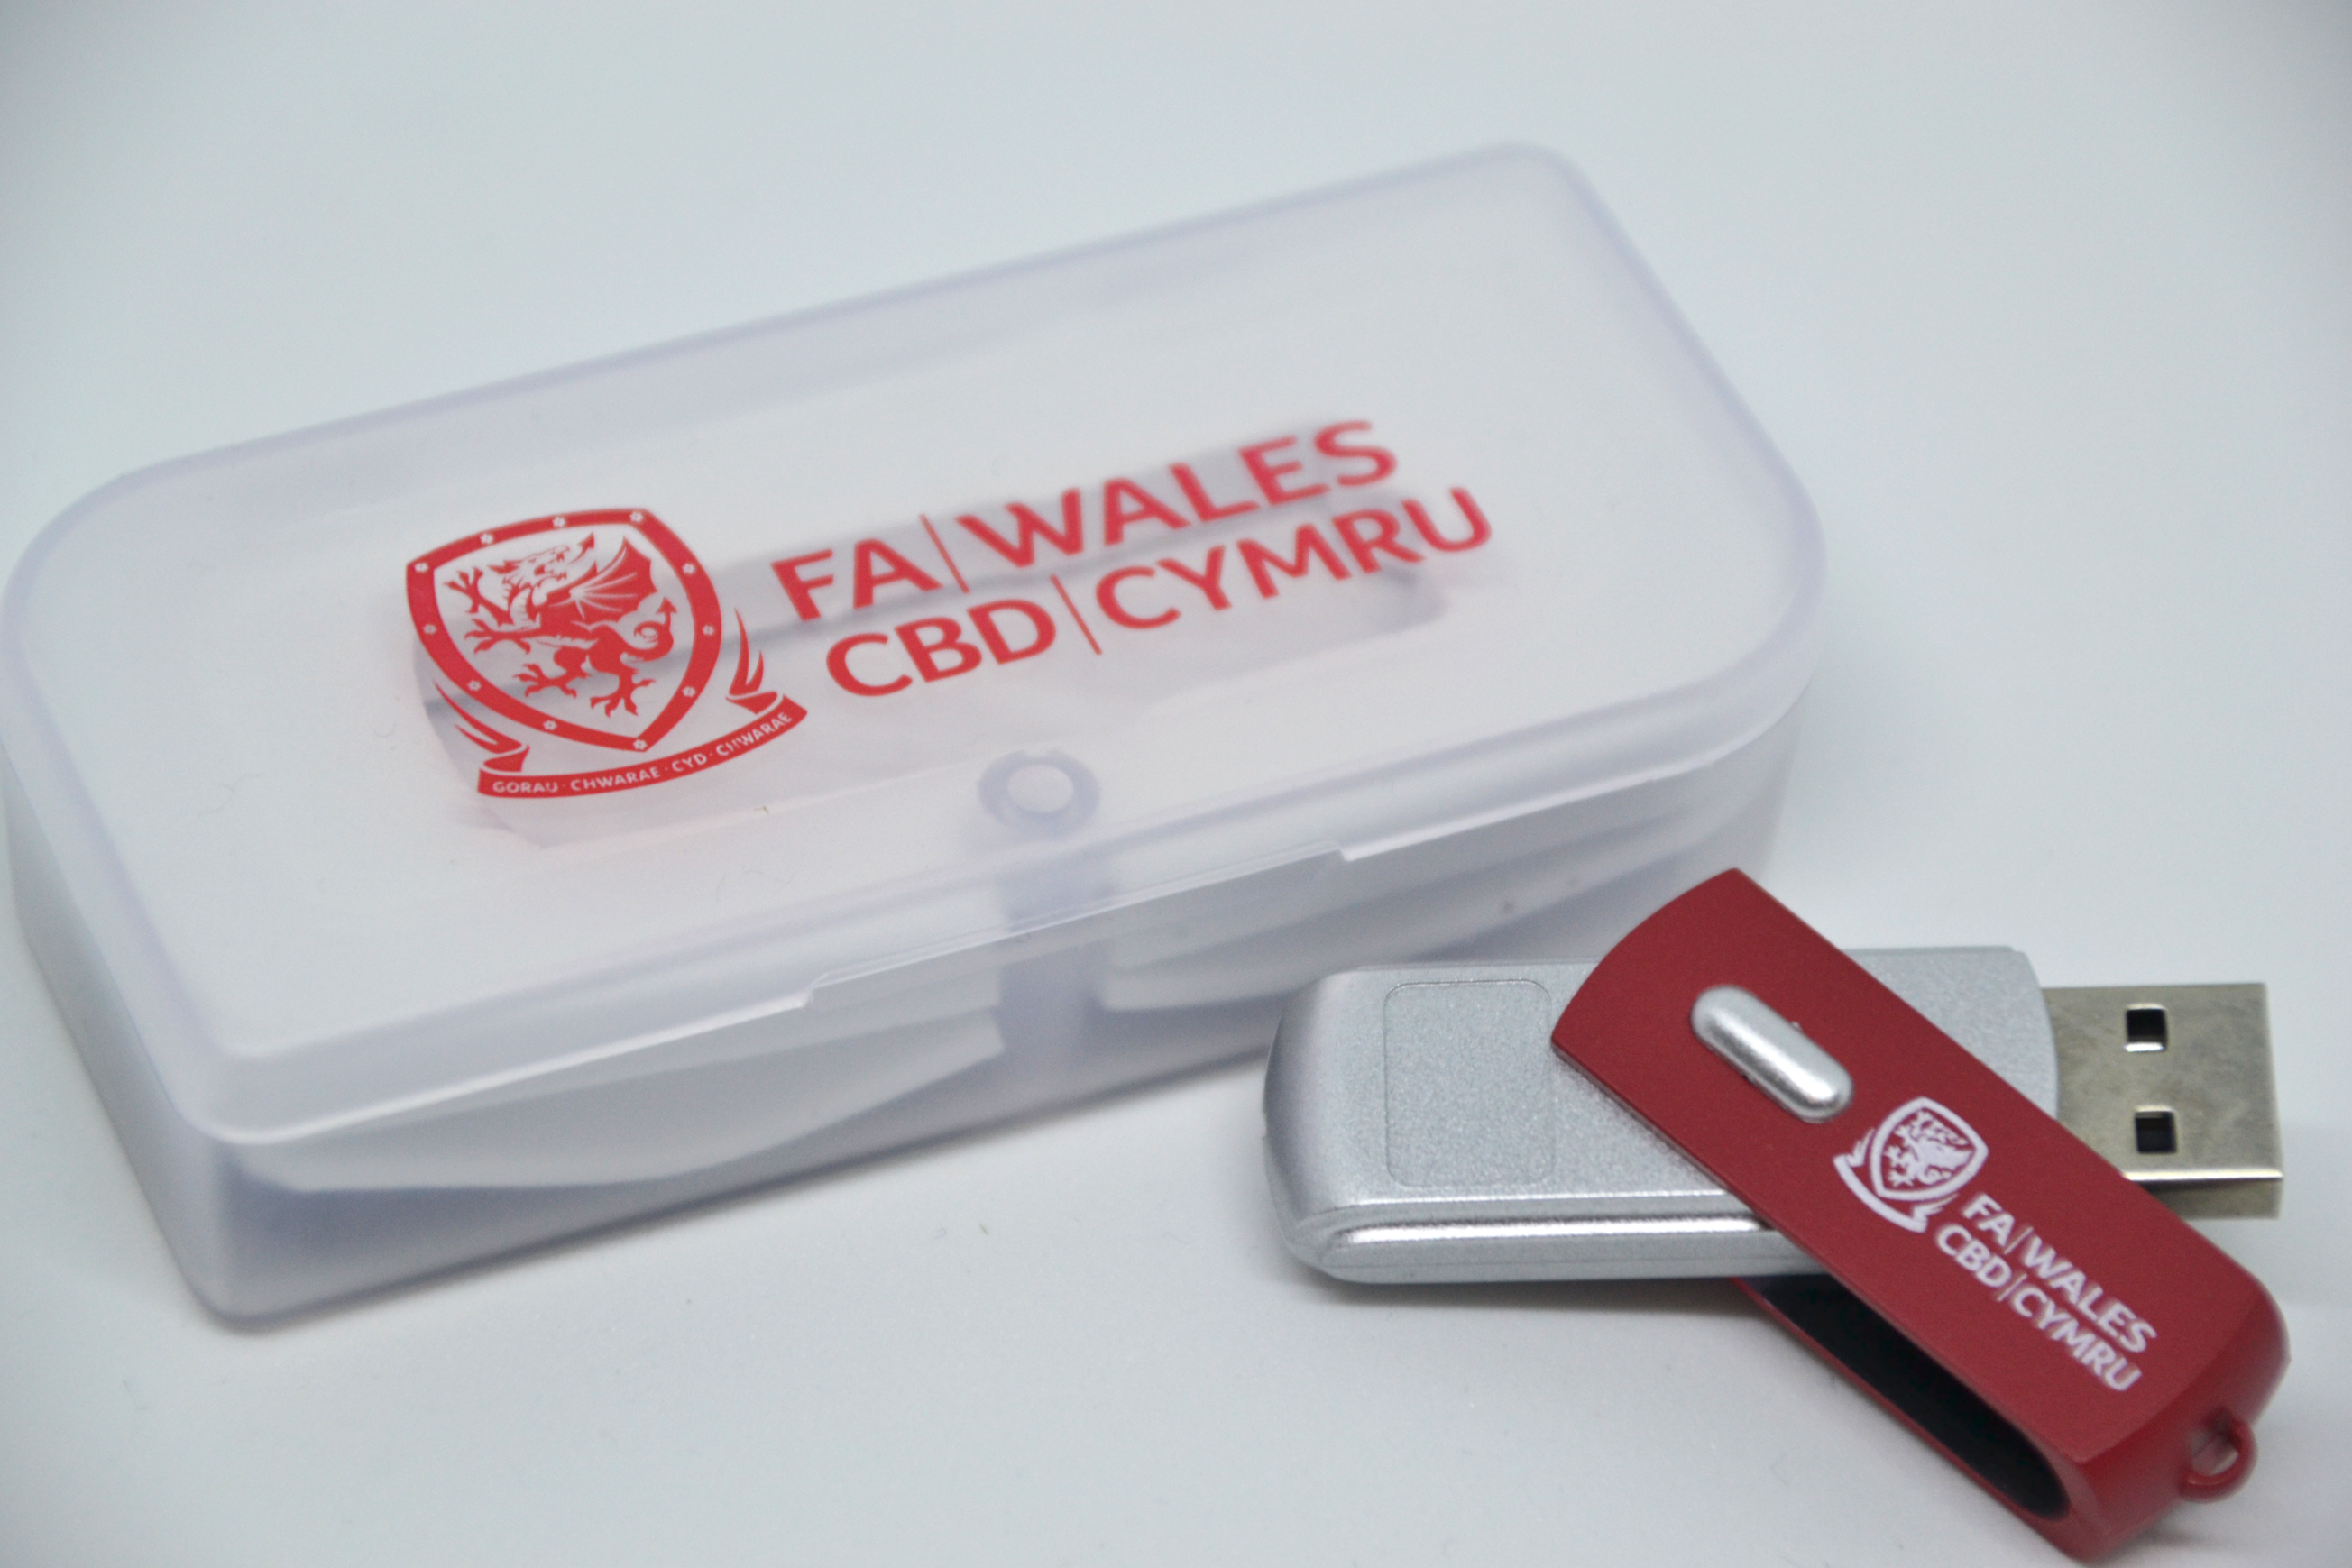 USB Drive Sets for FAW